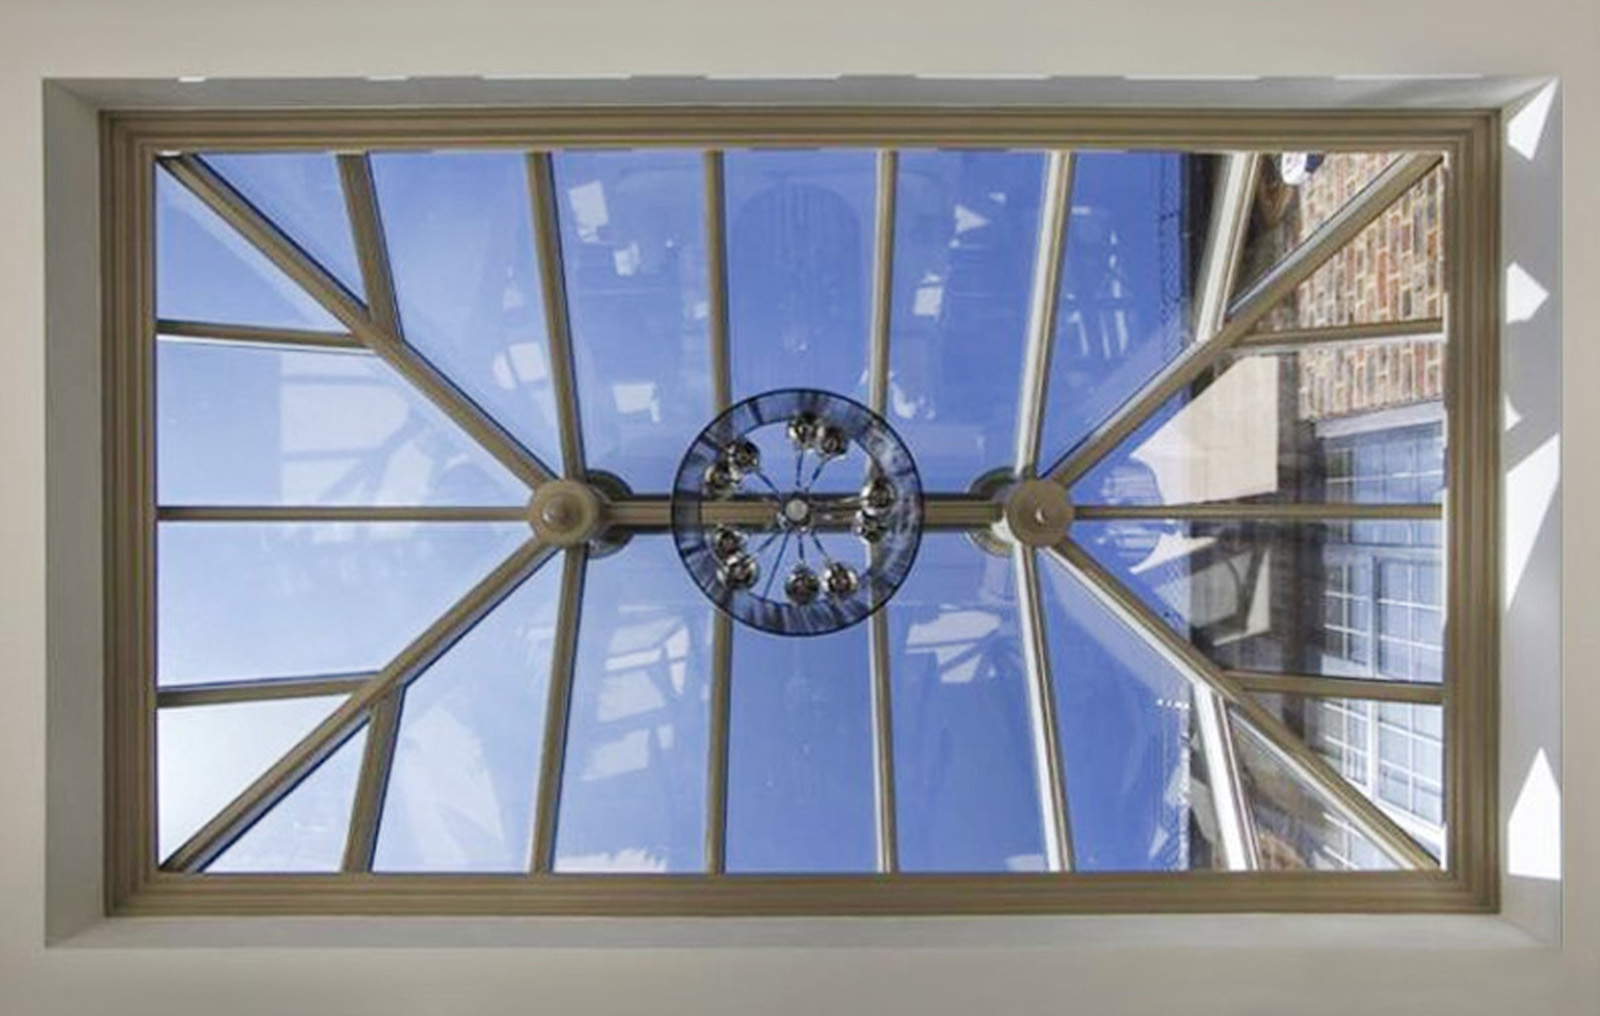 Internal image of a roof lantern